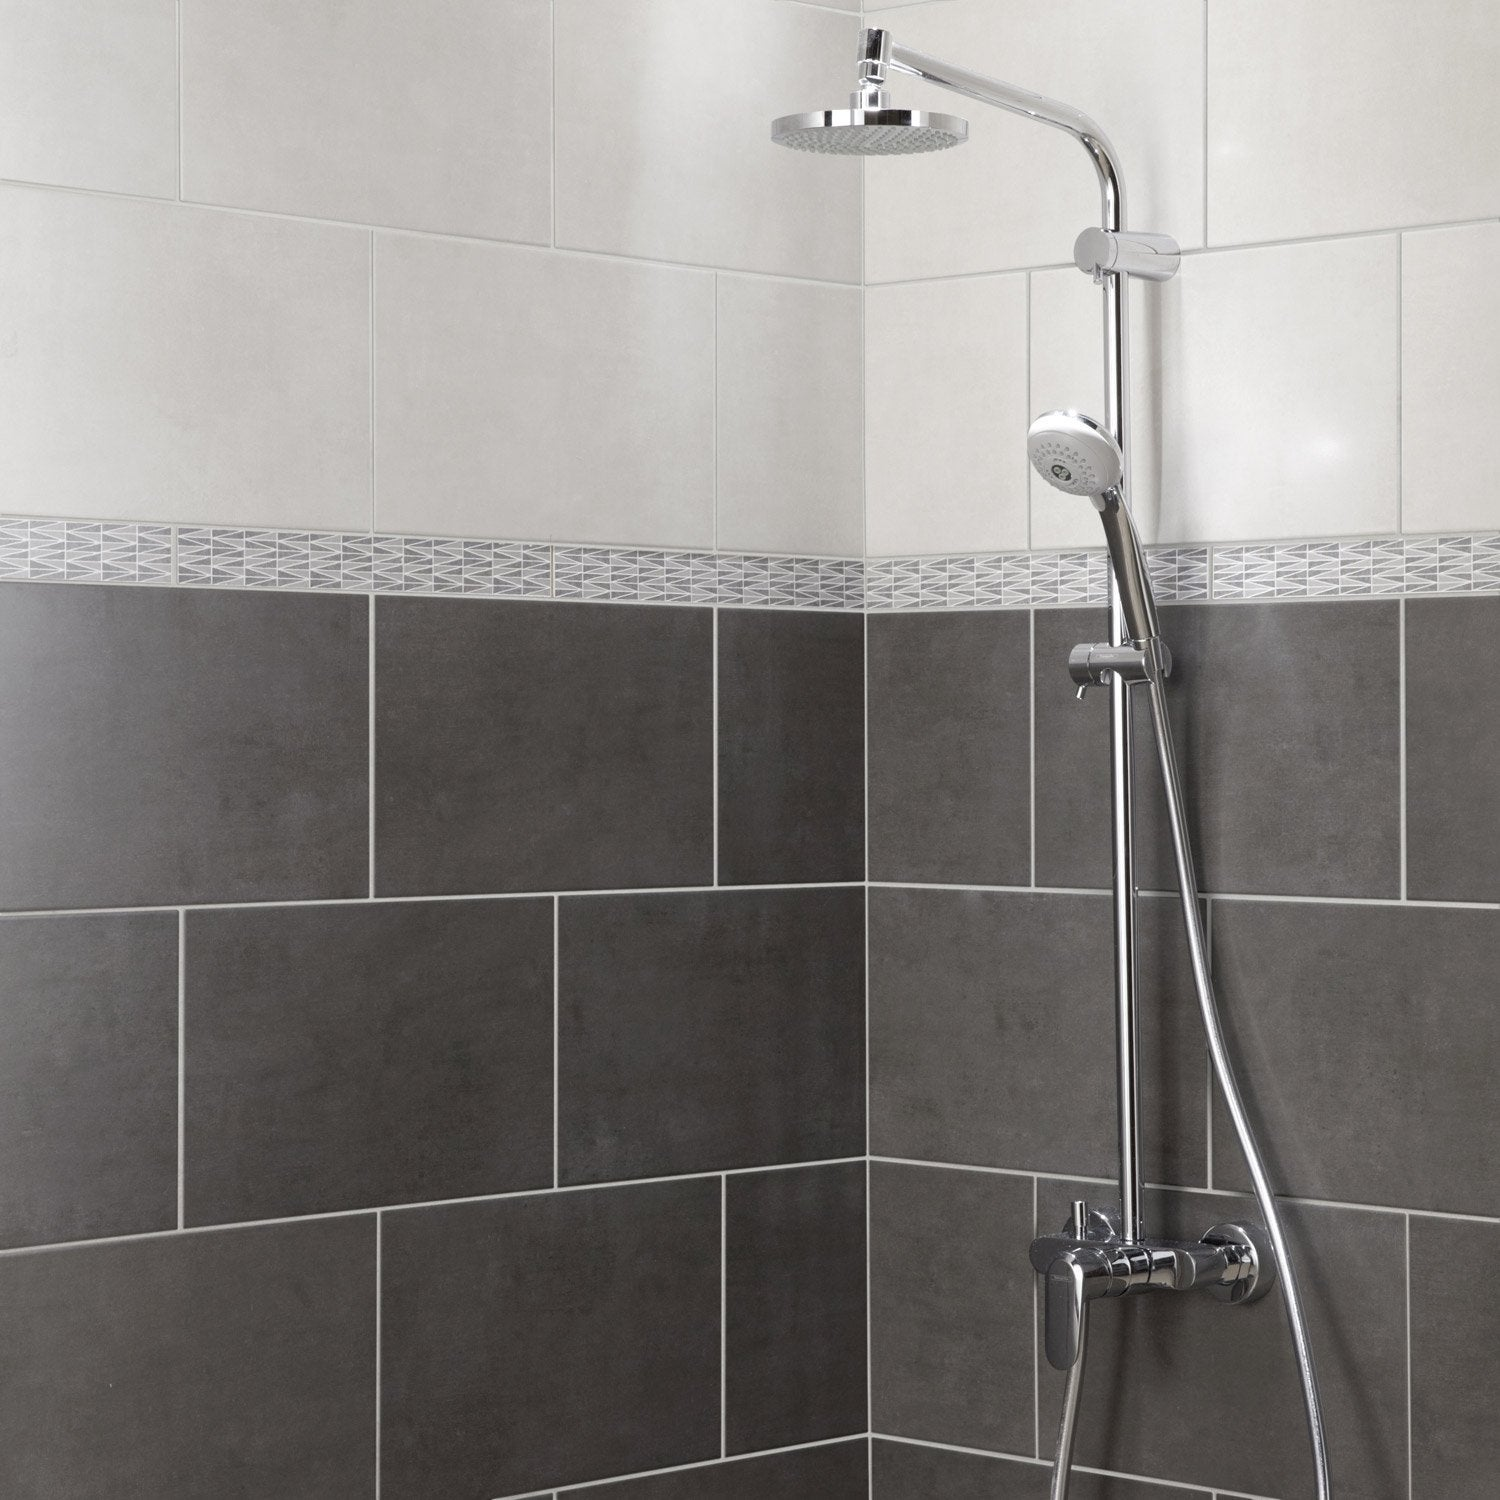 Fa ence mur anthracite smart x cm leroy merlin for Salle de bain renovee